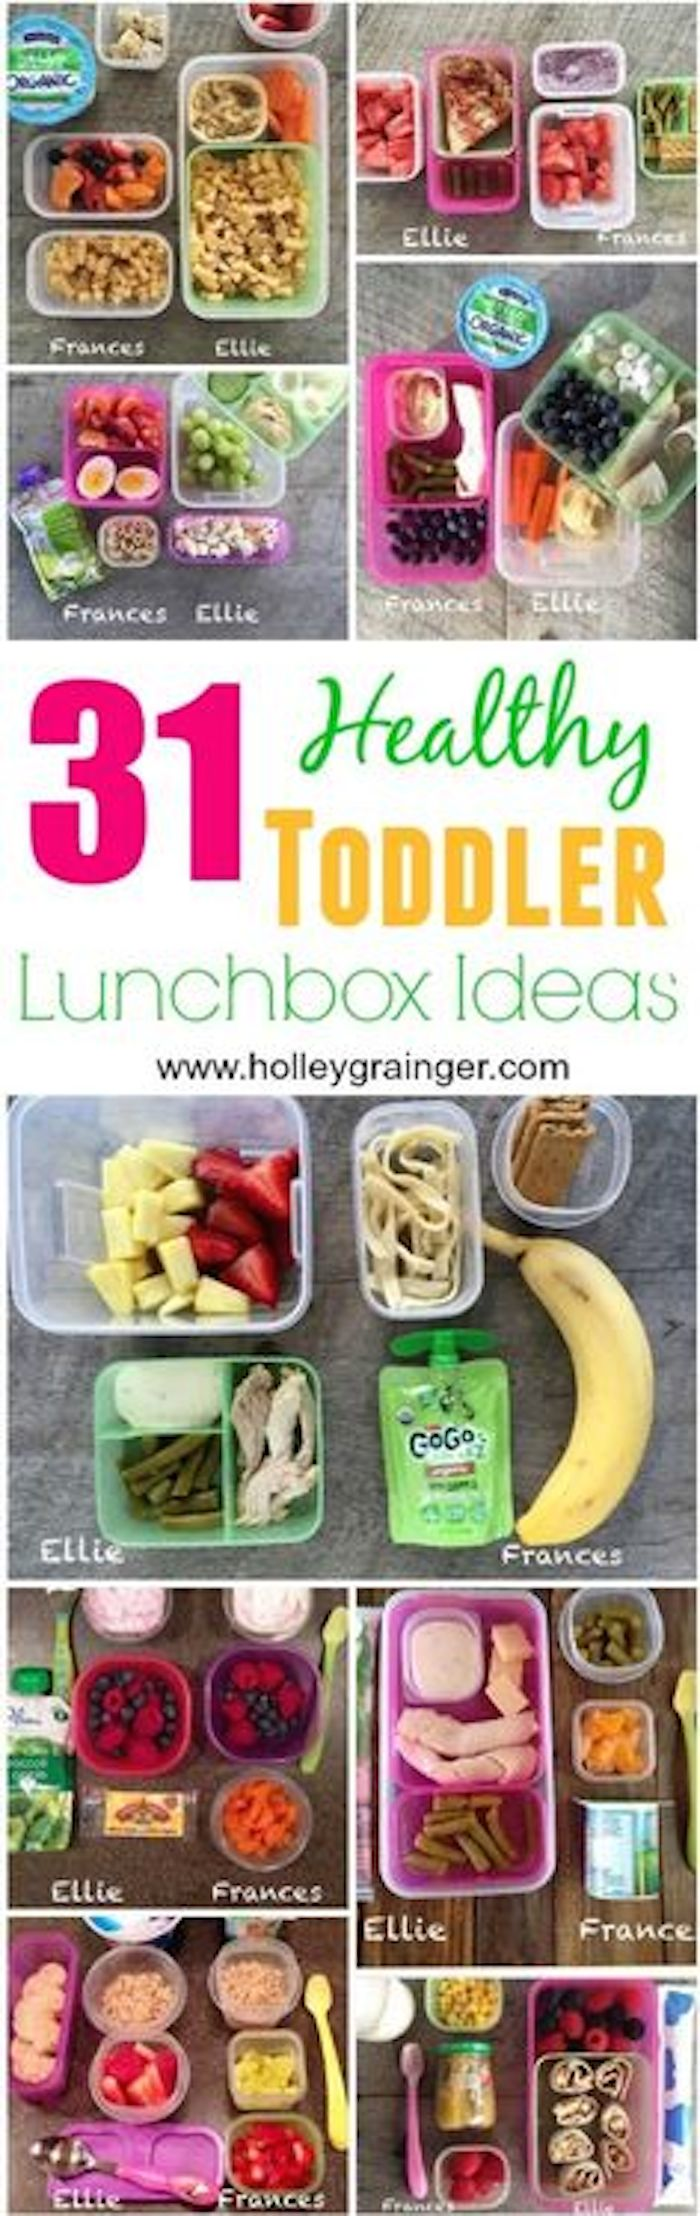 31 Healthy Toddler Lunchbox Ideas